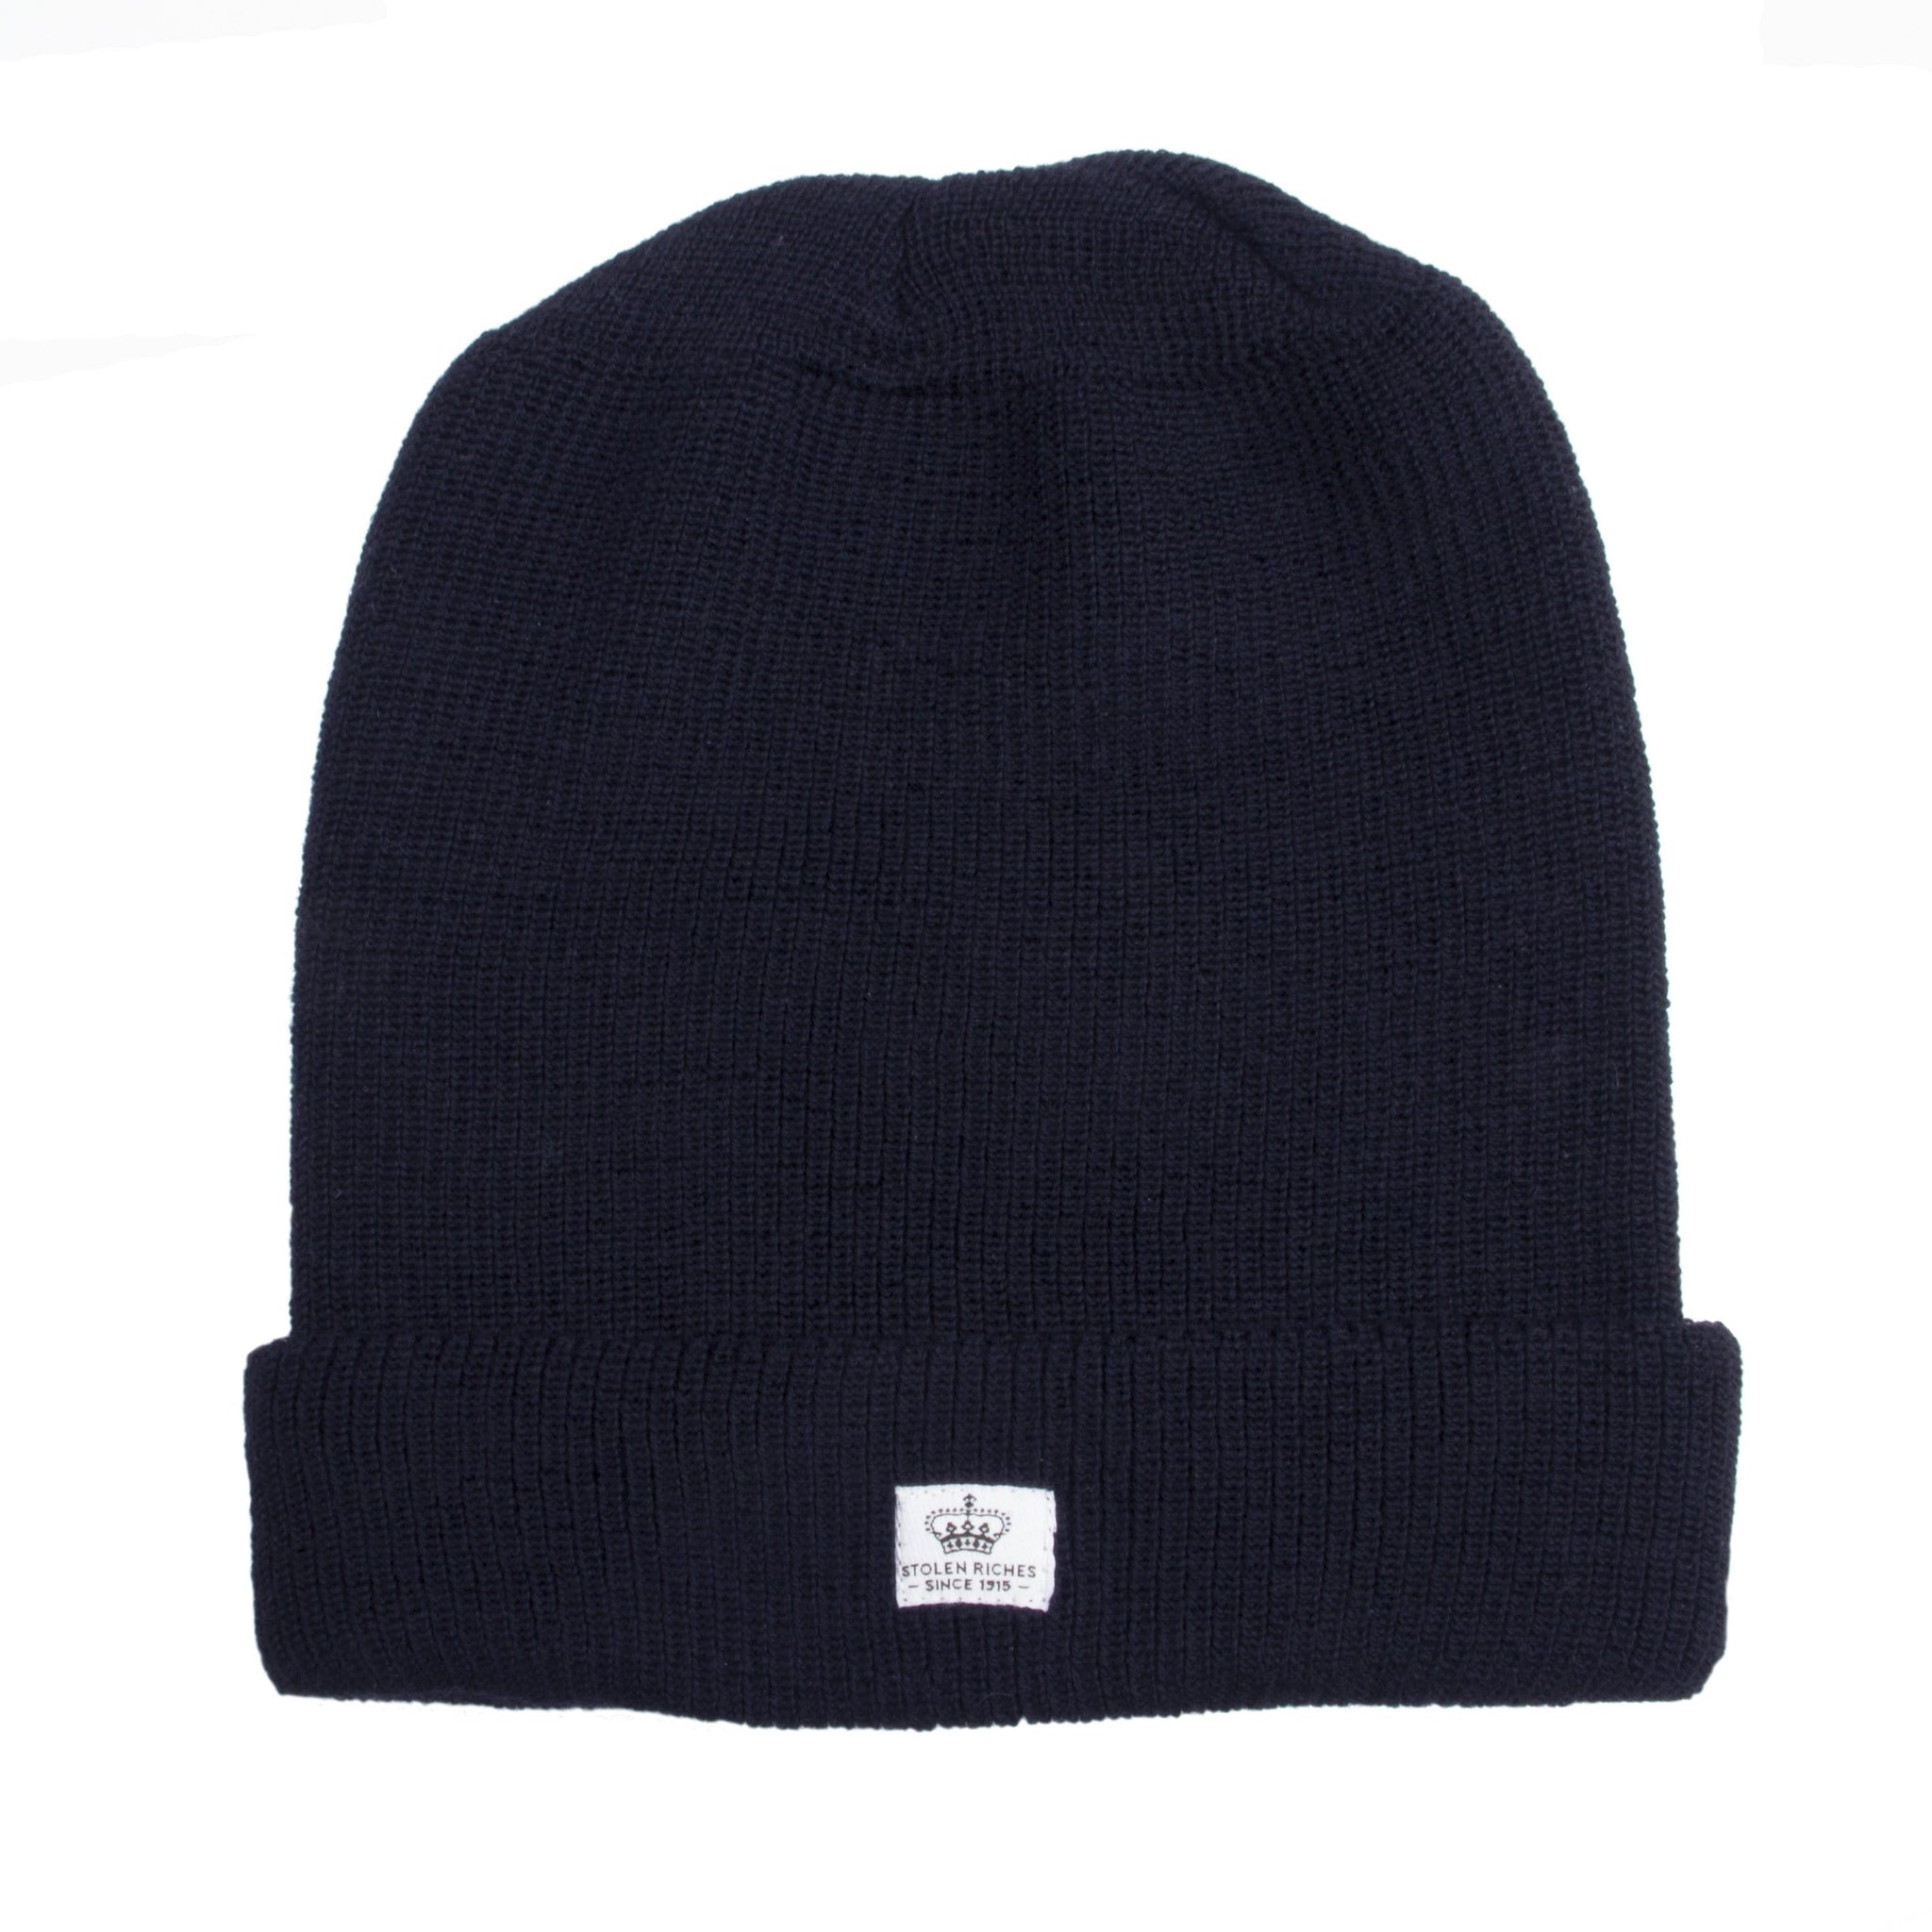 Mission Blue Wool Toque - Stolen Riches